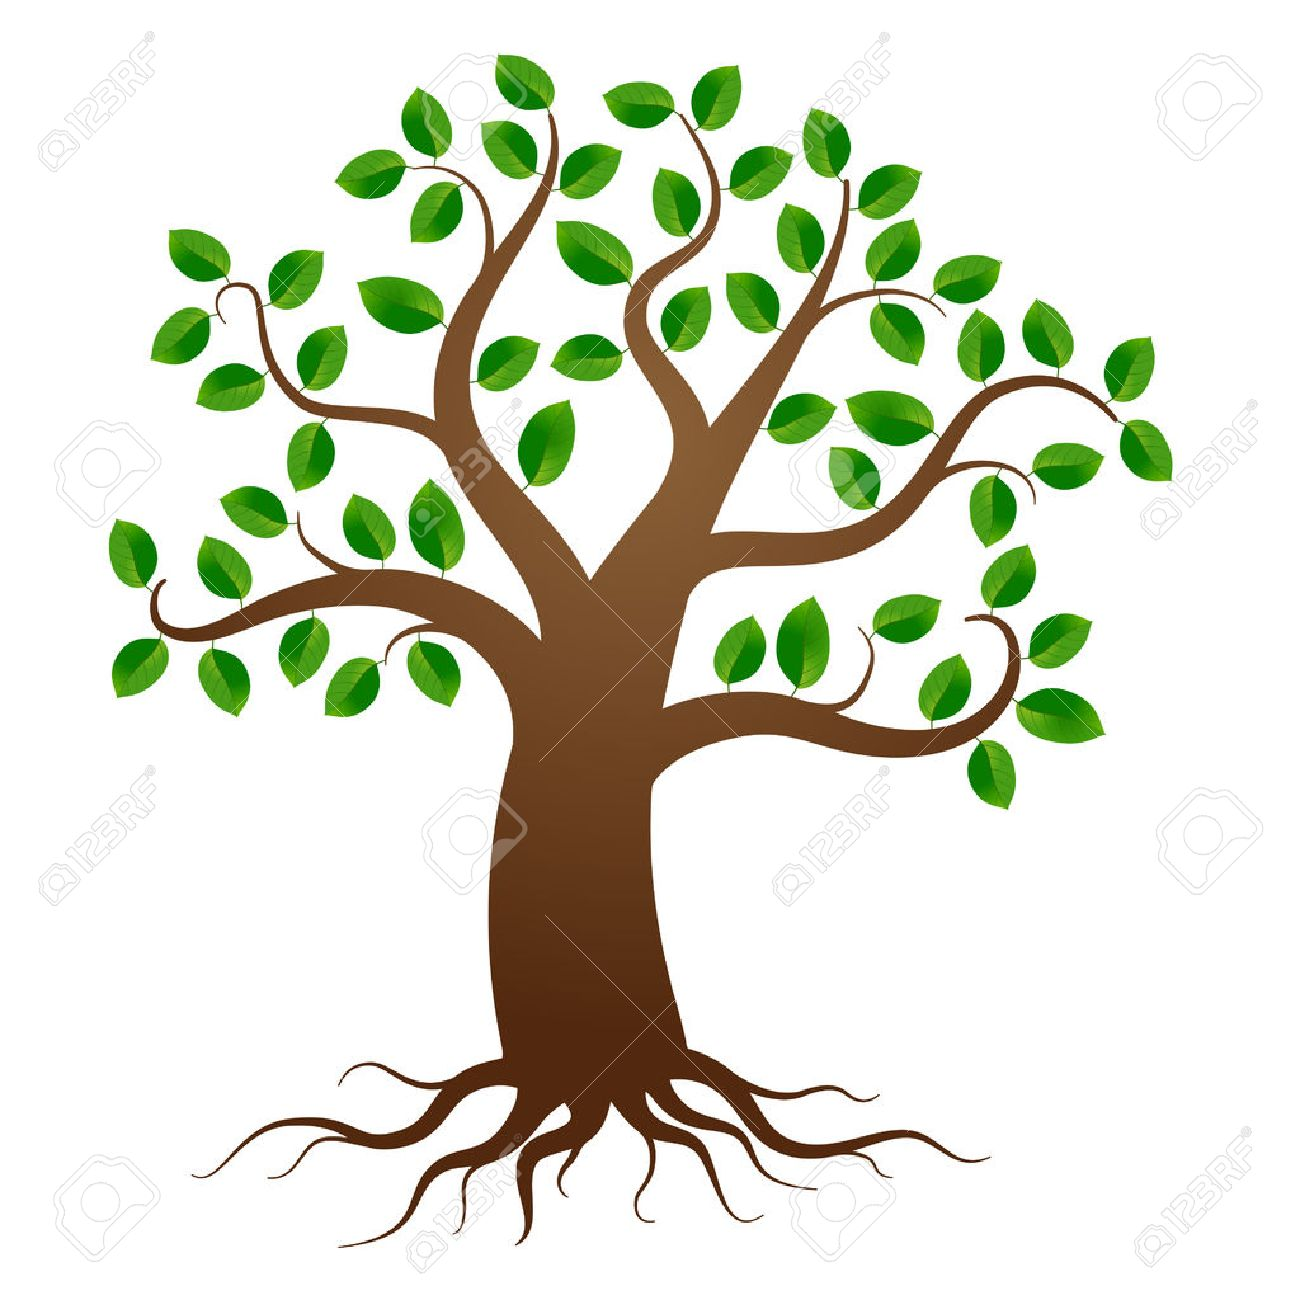 13 927 tree with roots cliparts stock vector and royalty free tree rh 123rf com clipart tree with roots and leaves clipart tree with roots outline